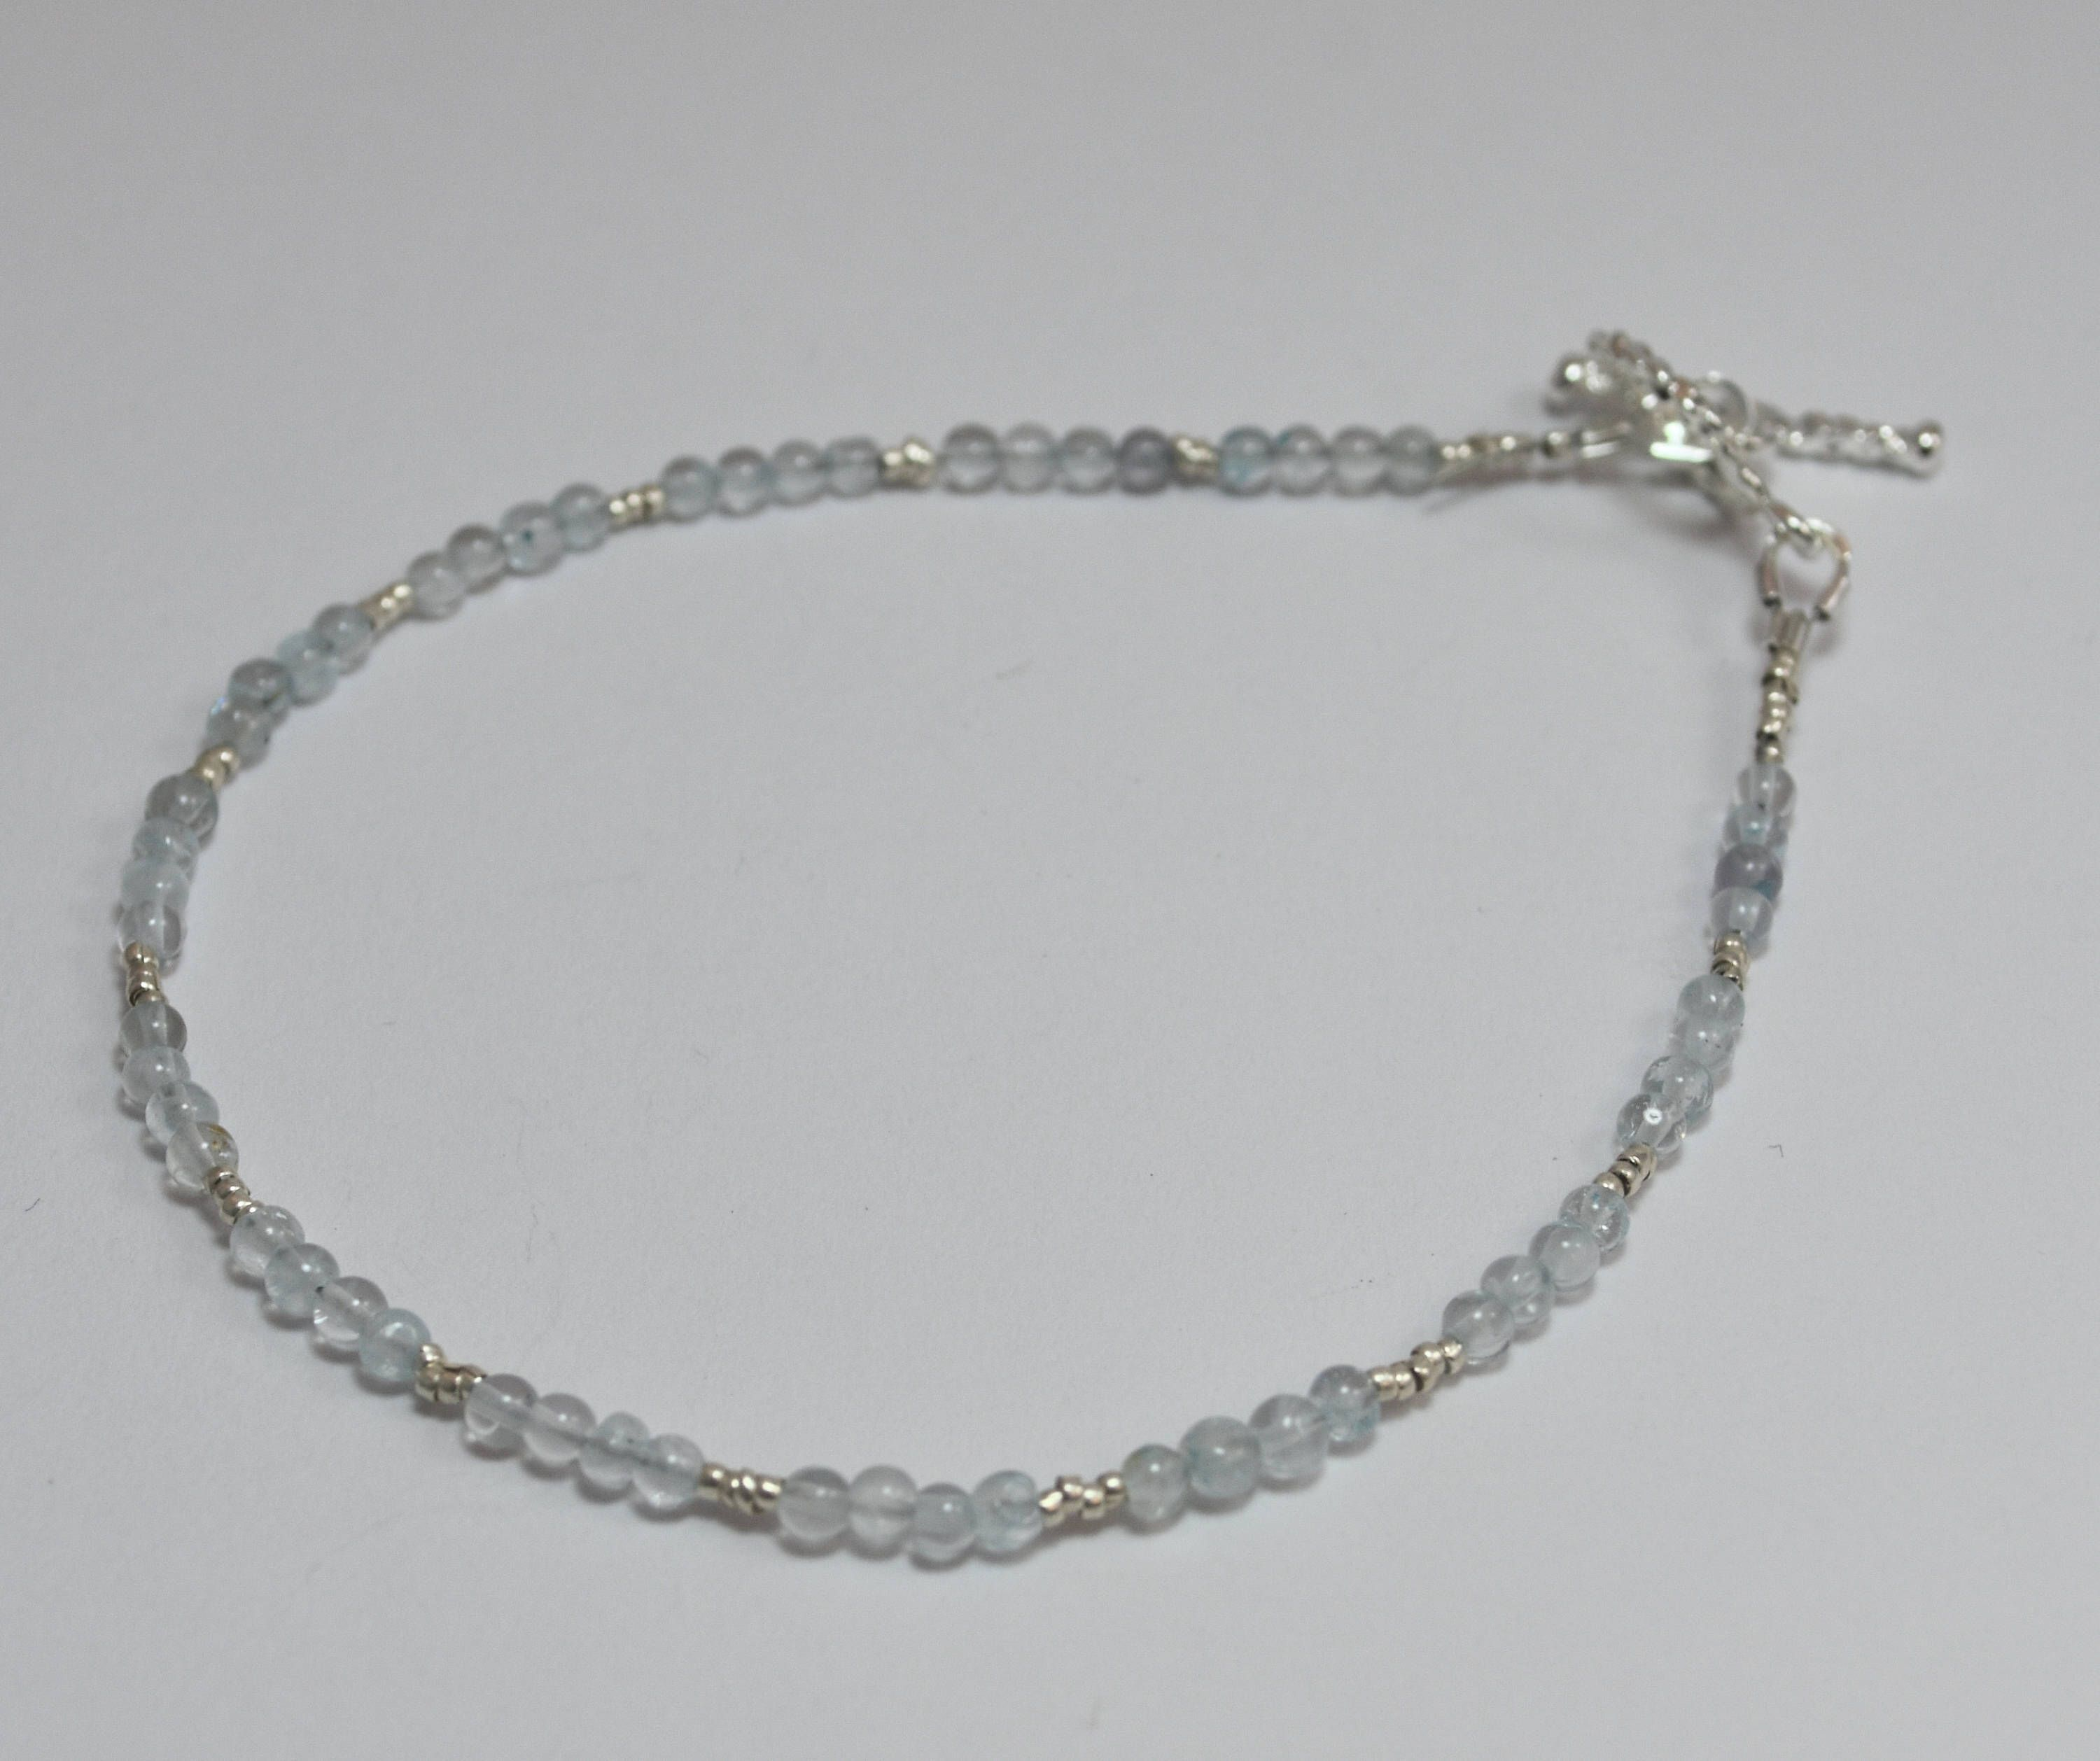 style quartz aquamarine pin apatite thai blue hill tribe anklet bracelet karen london silver beaded sundance moonstone